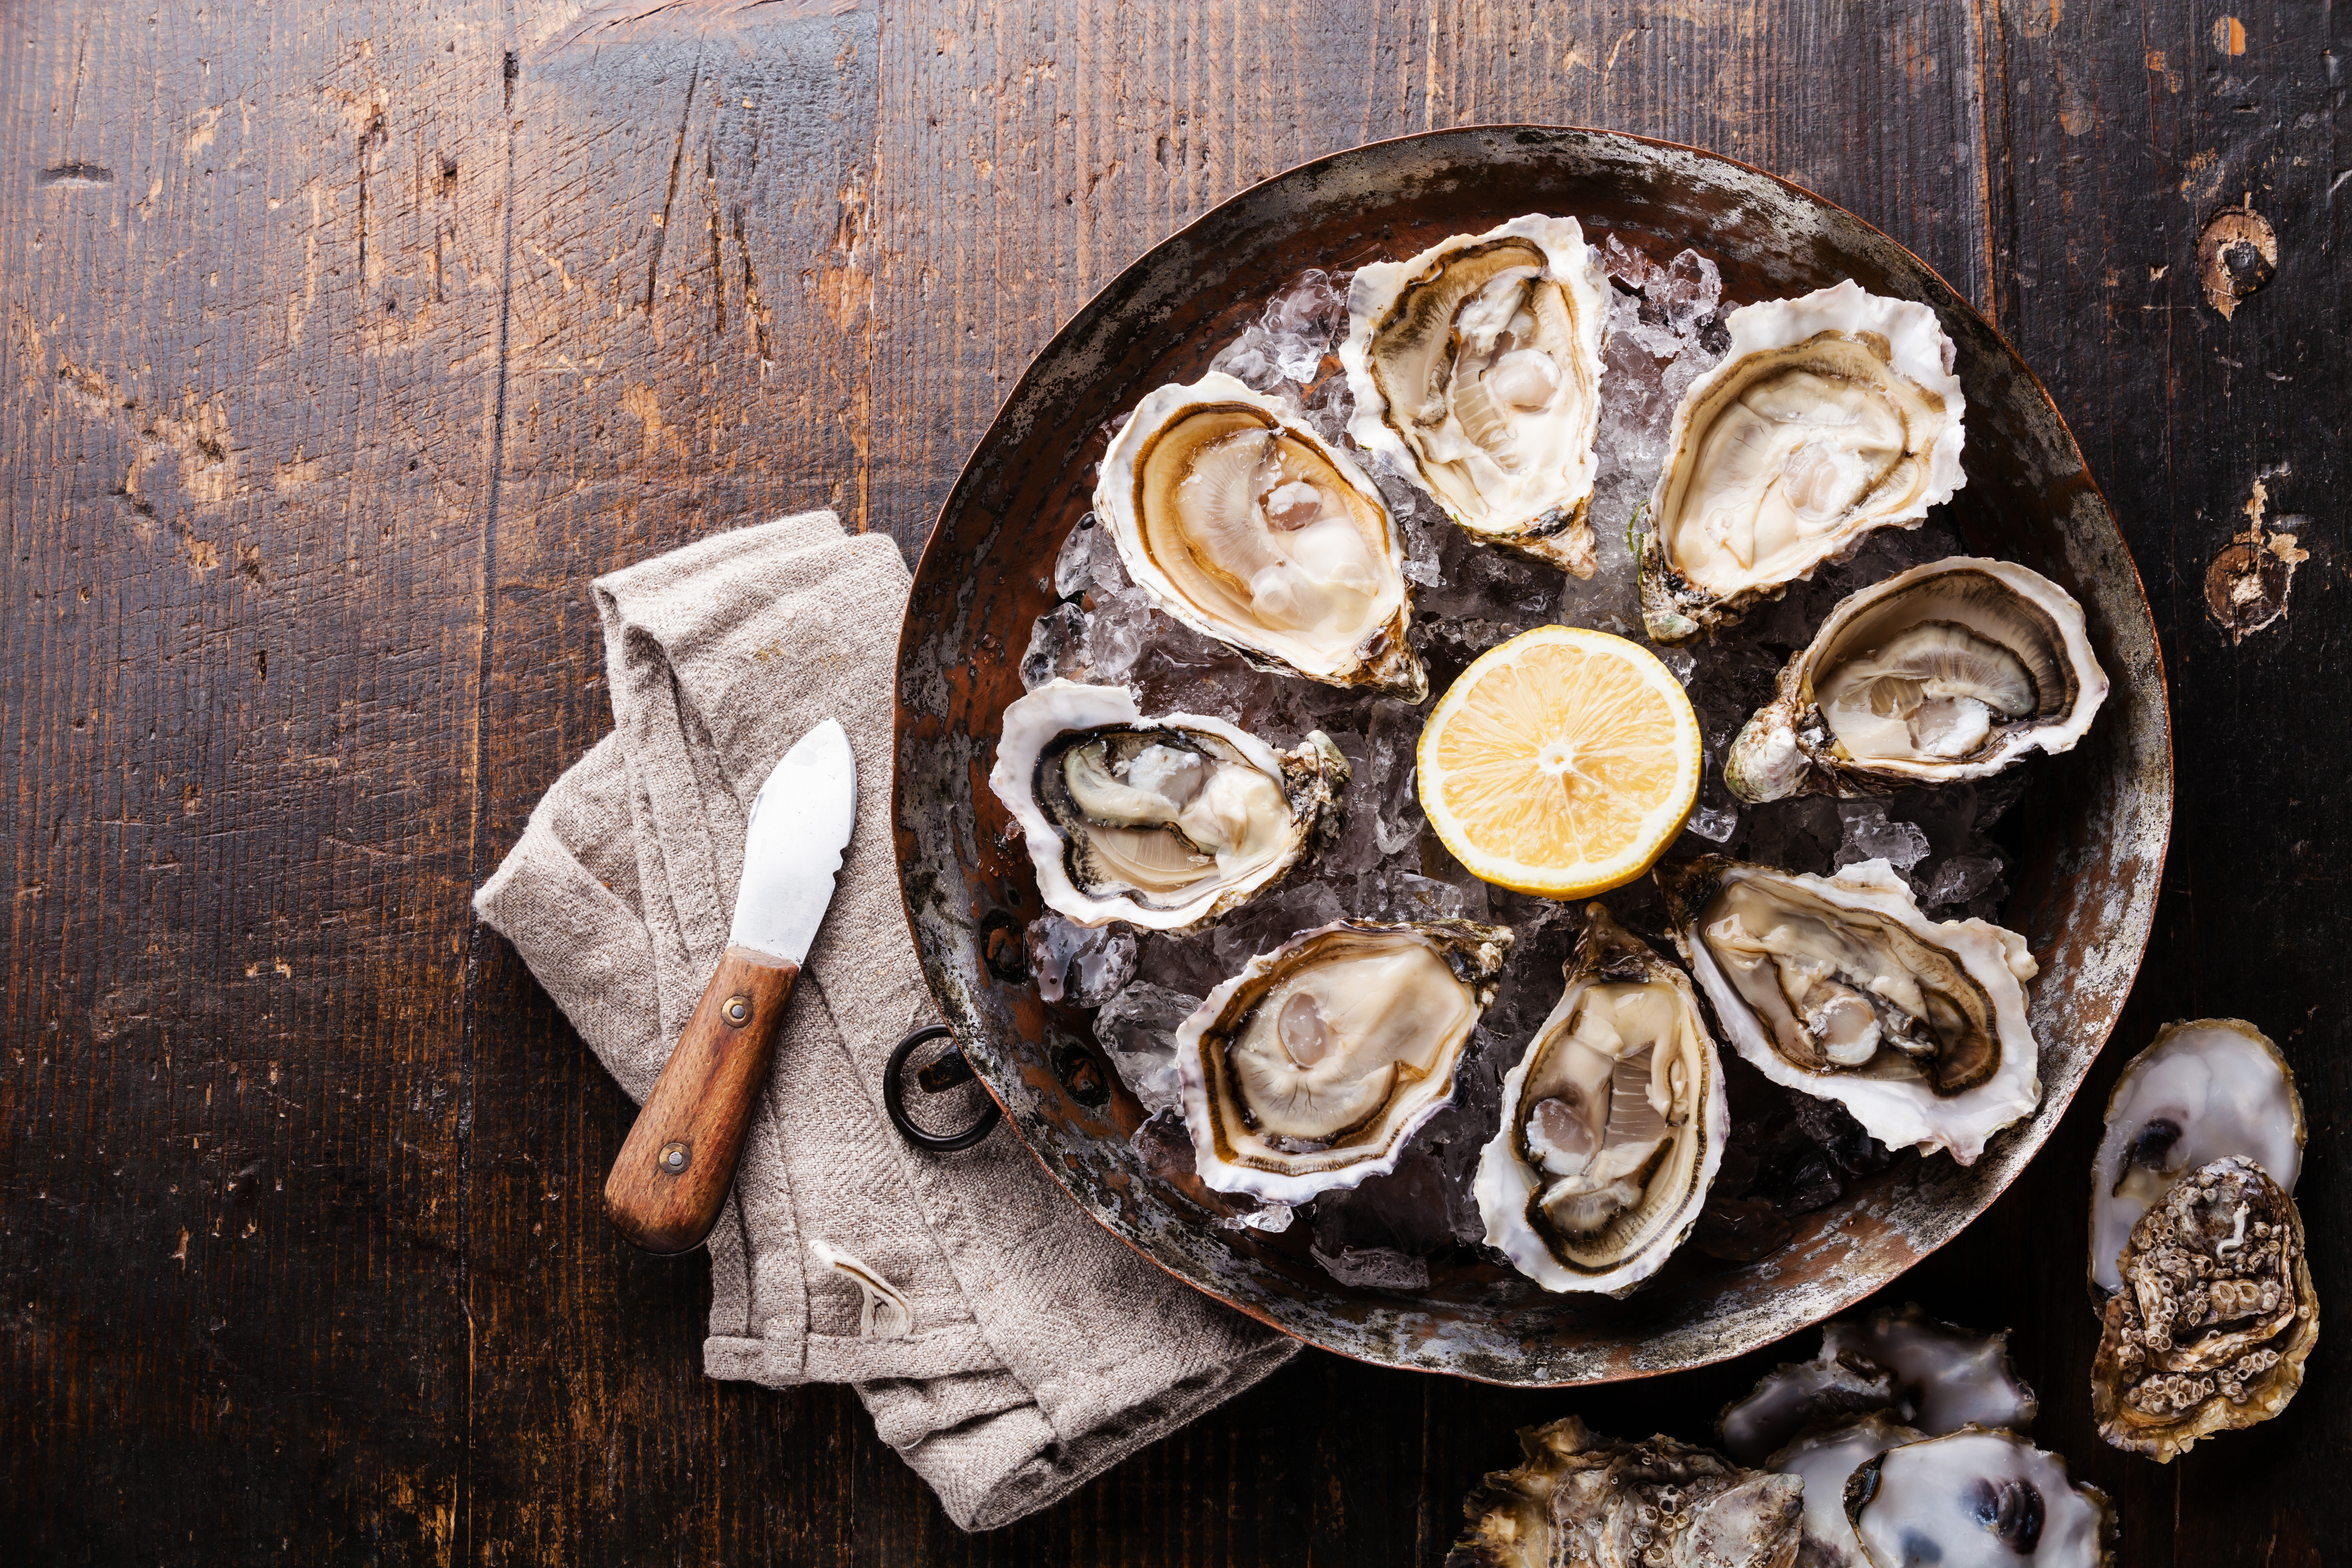 Stock photograph of oysters. An overhead view shows a platter of eight oysters on the half shell on ice, with a sliced lemon in the middle, all sitting on a dark wooden table.